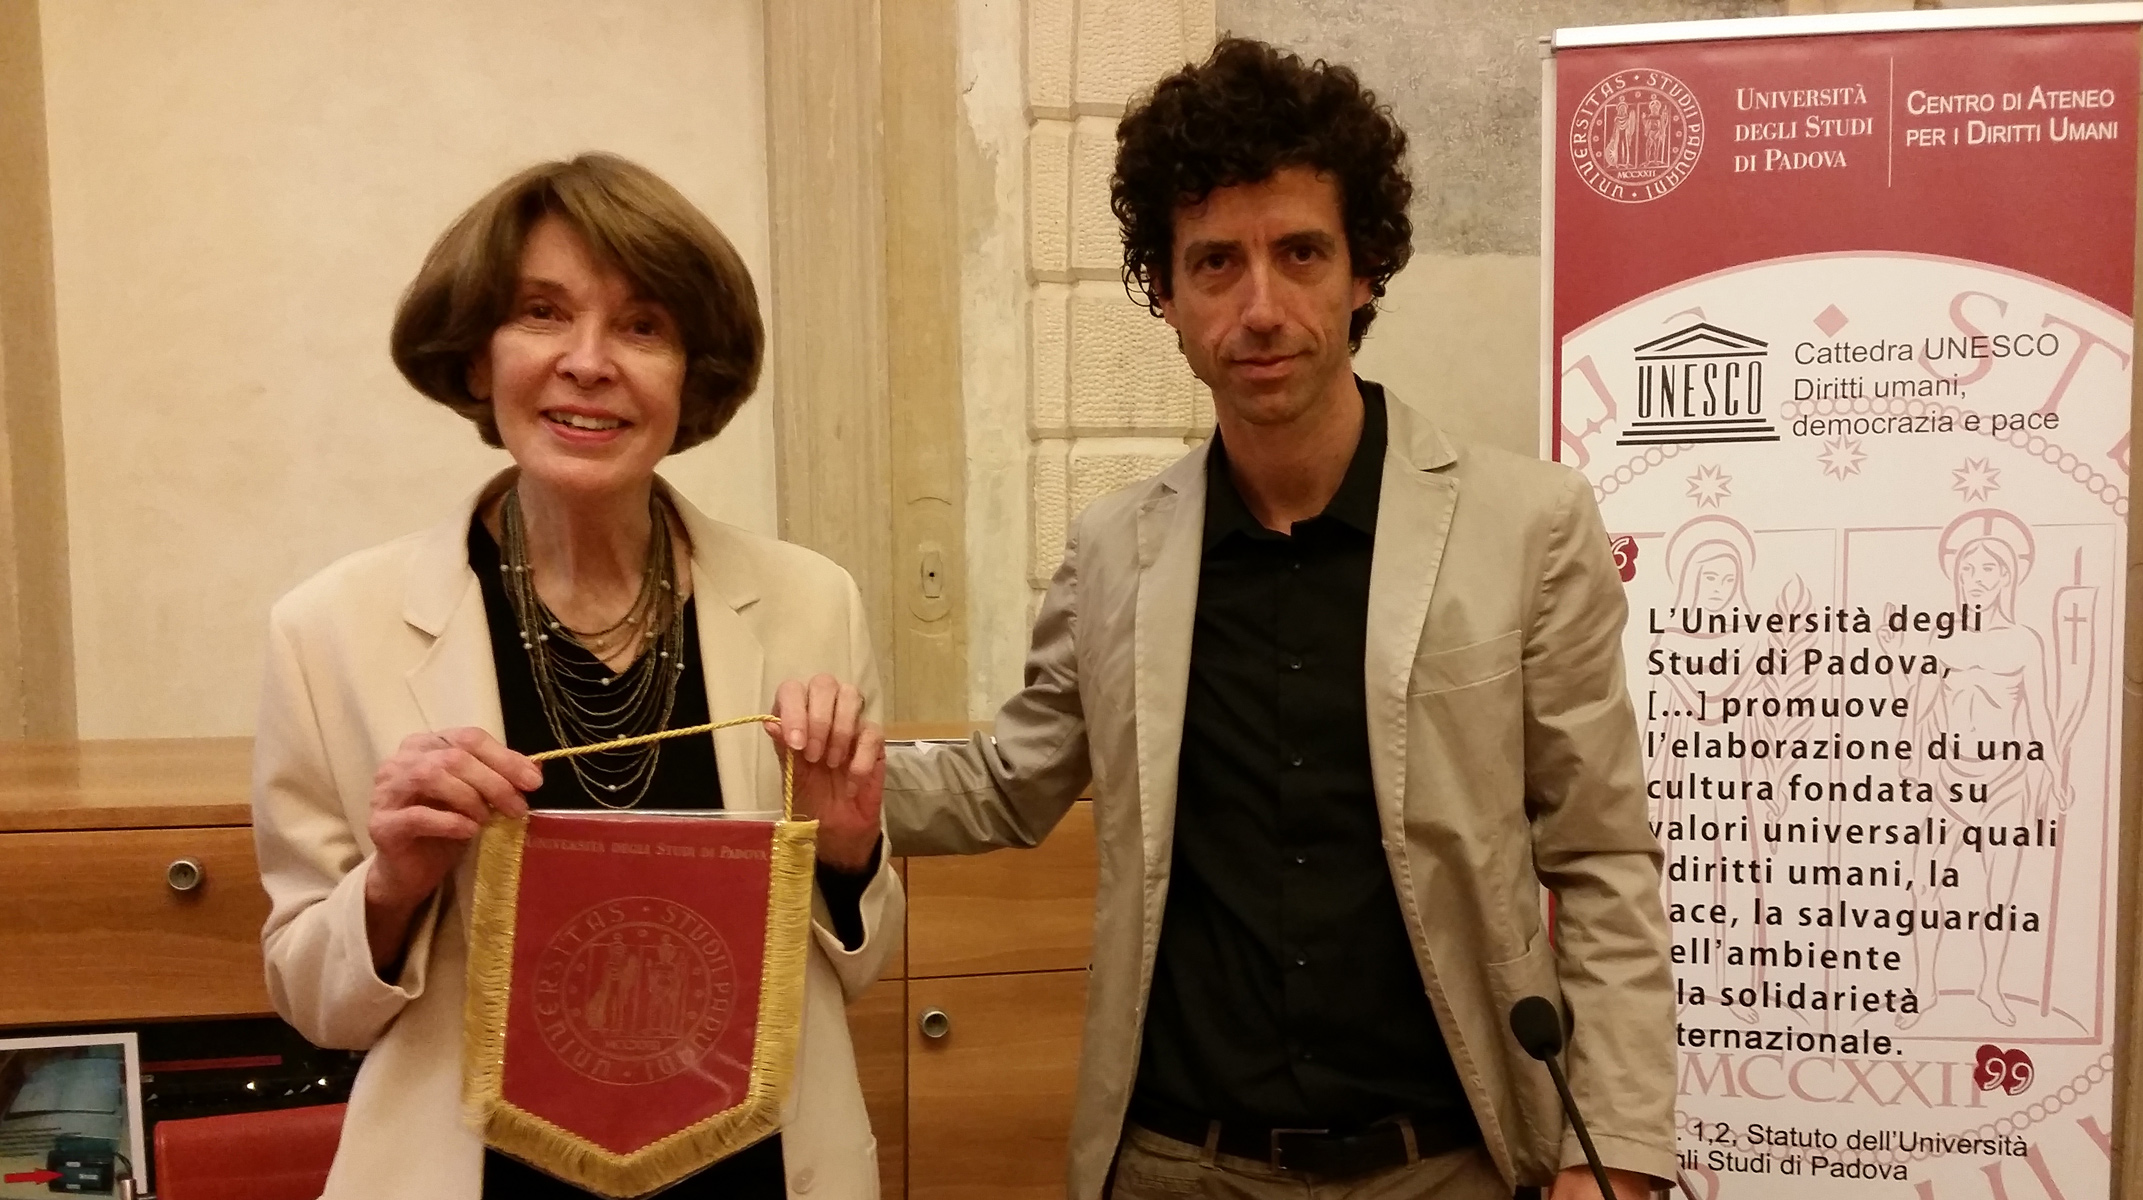 Professor  Roberto De Vogli giving the pennant of the University of Padua to Susan George